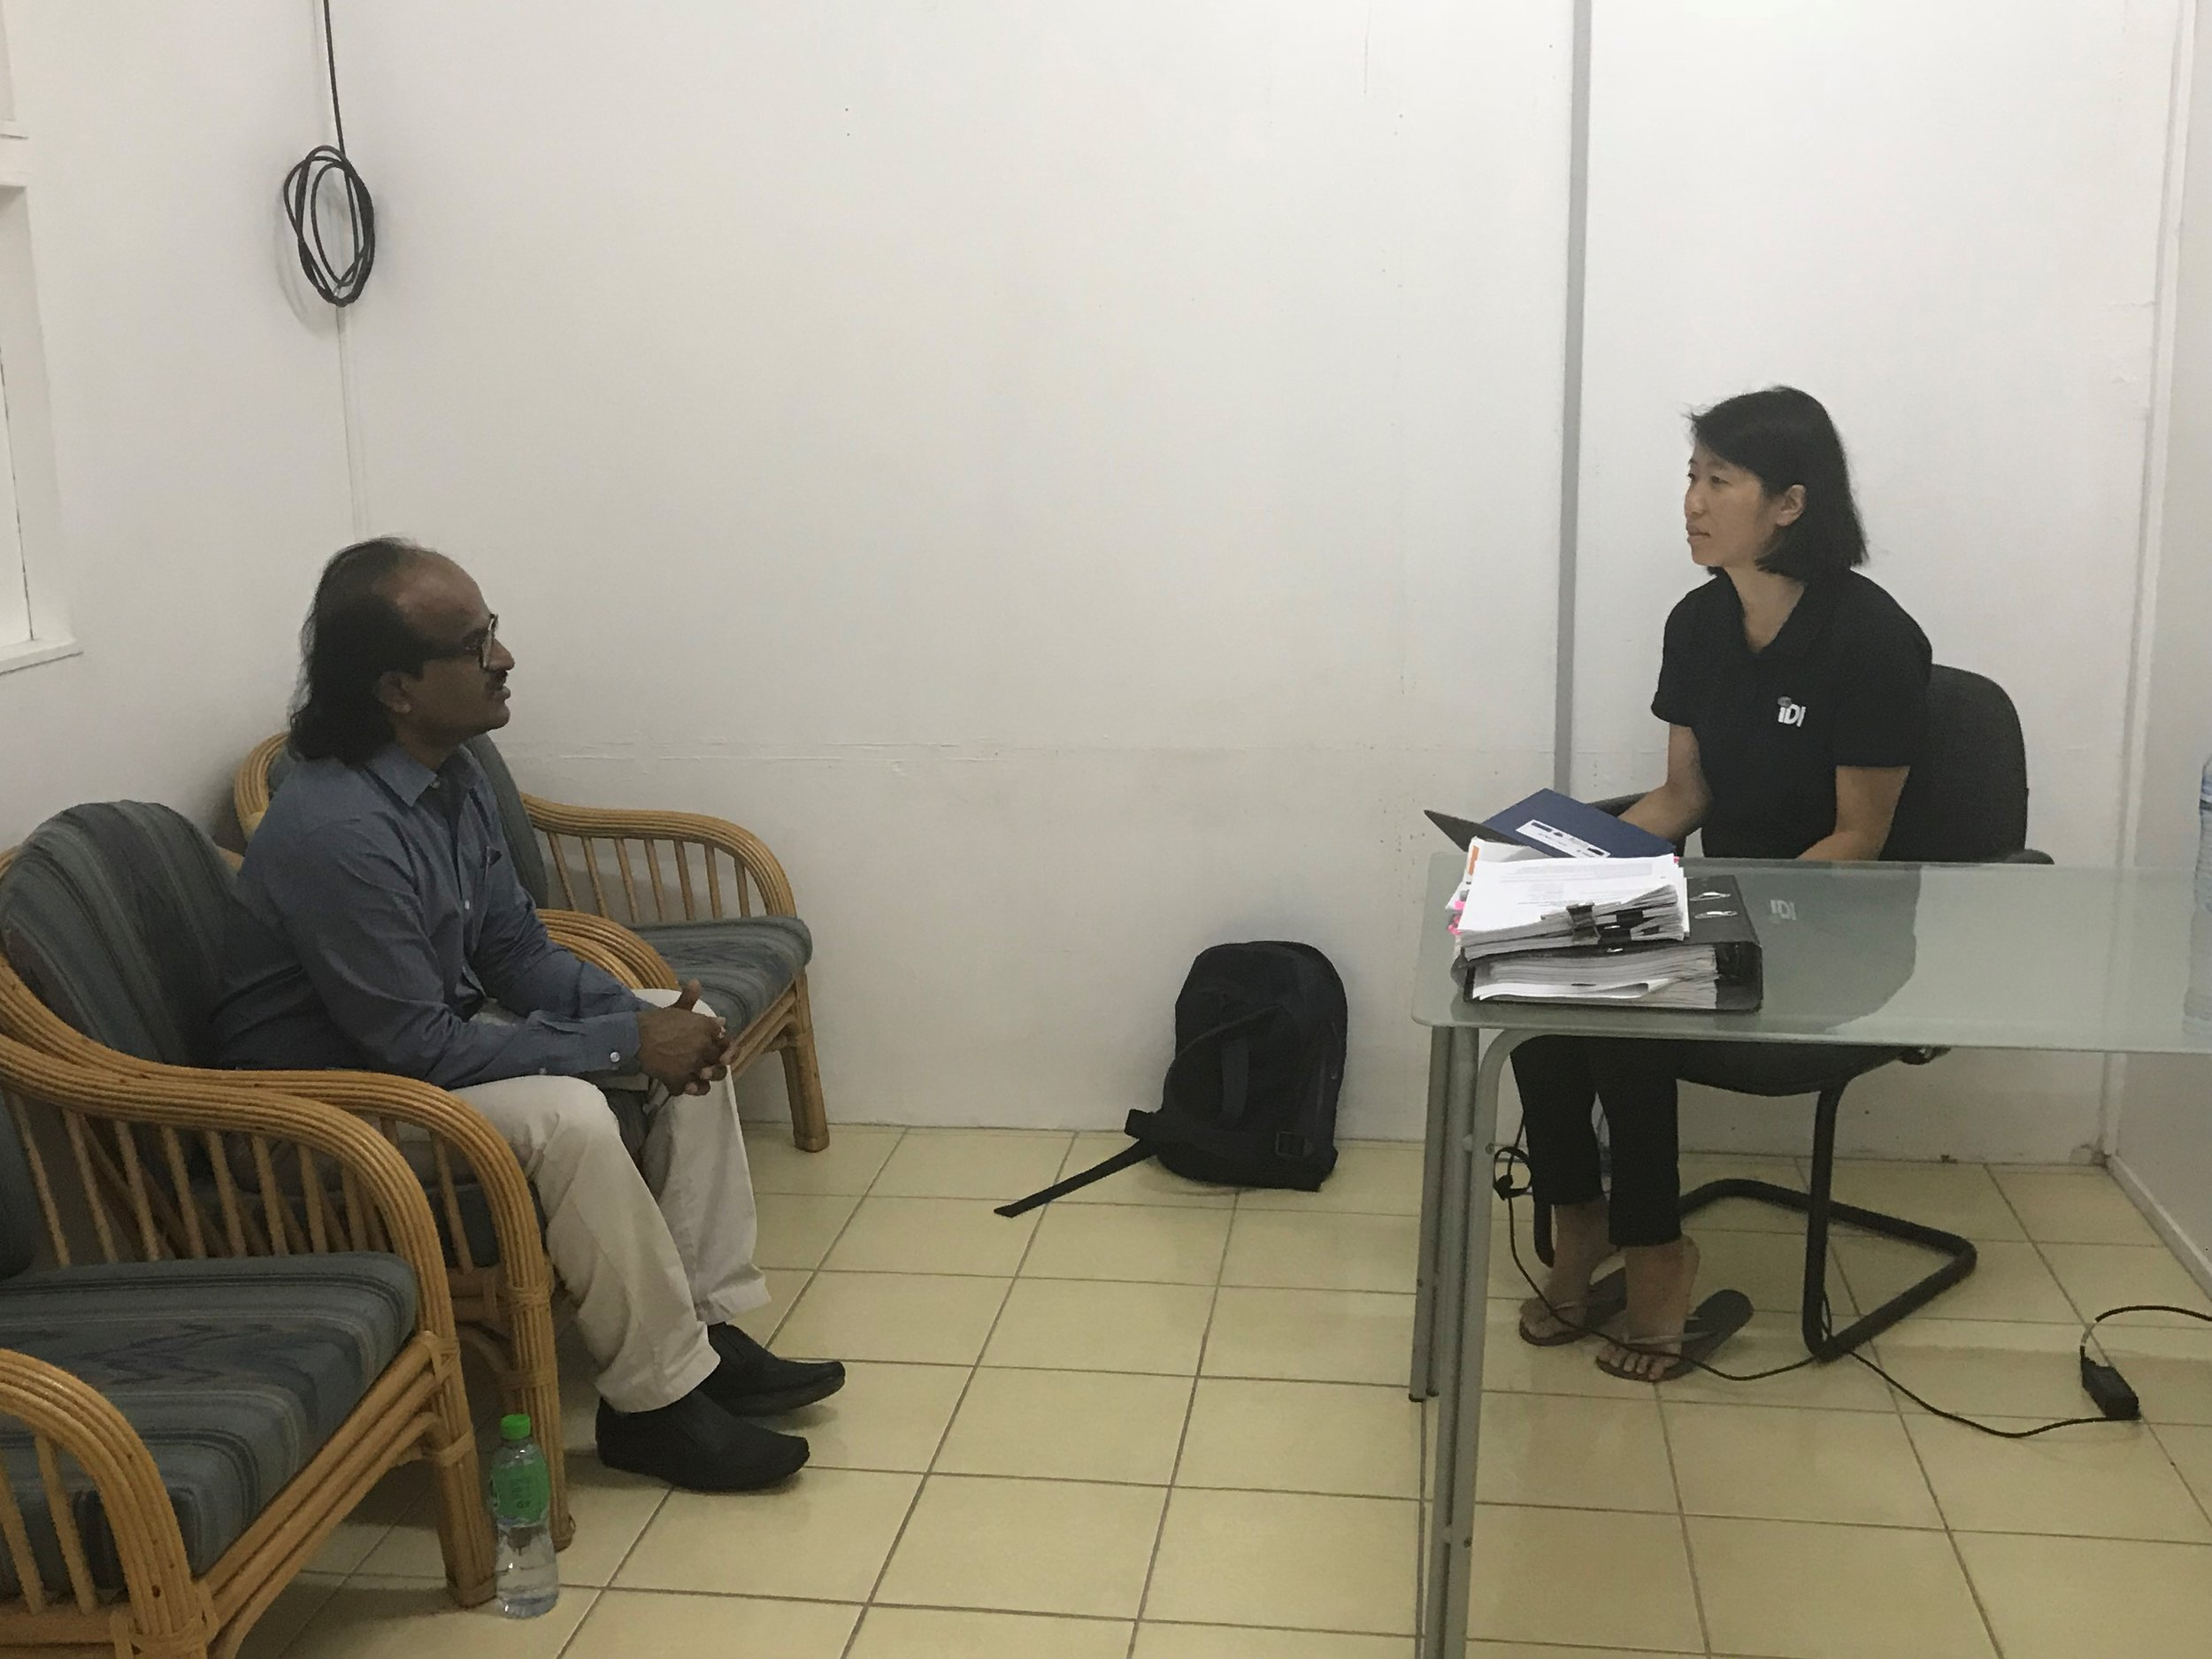 Nauru Auditor General, Manoharan Nair and Irina Sprenglewski of IDI